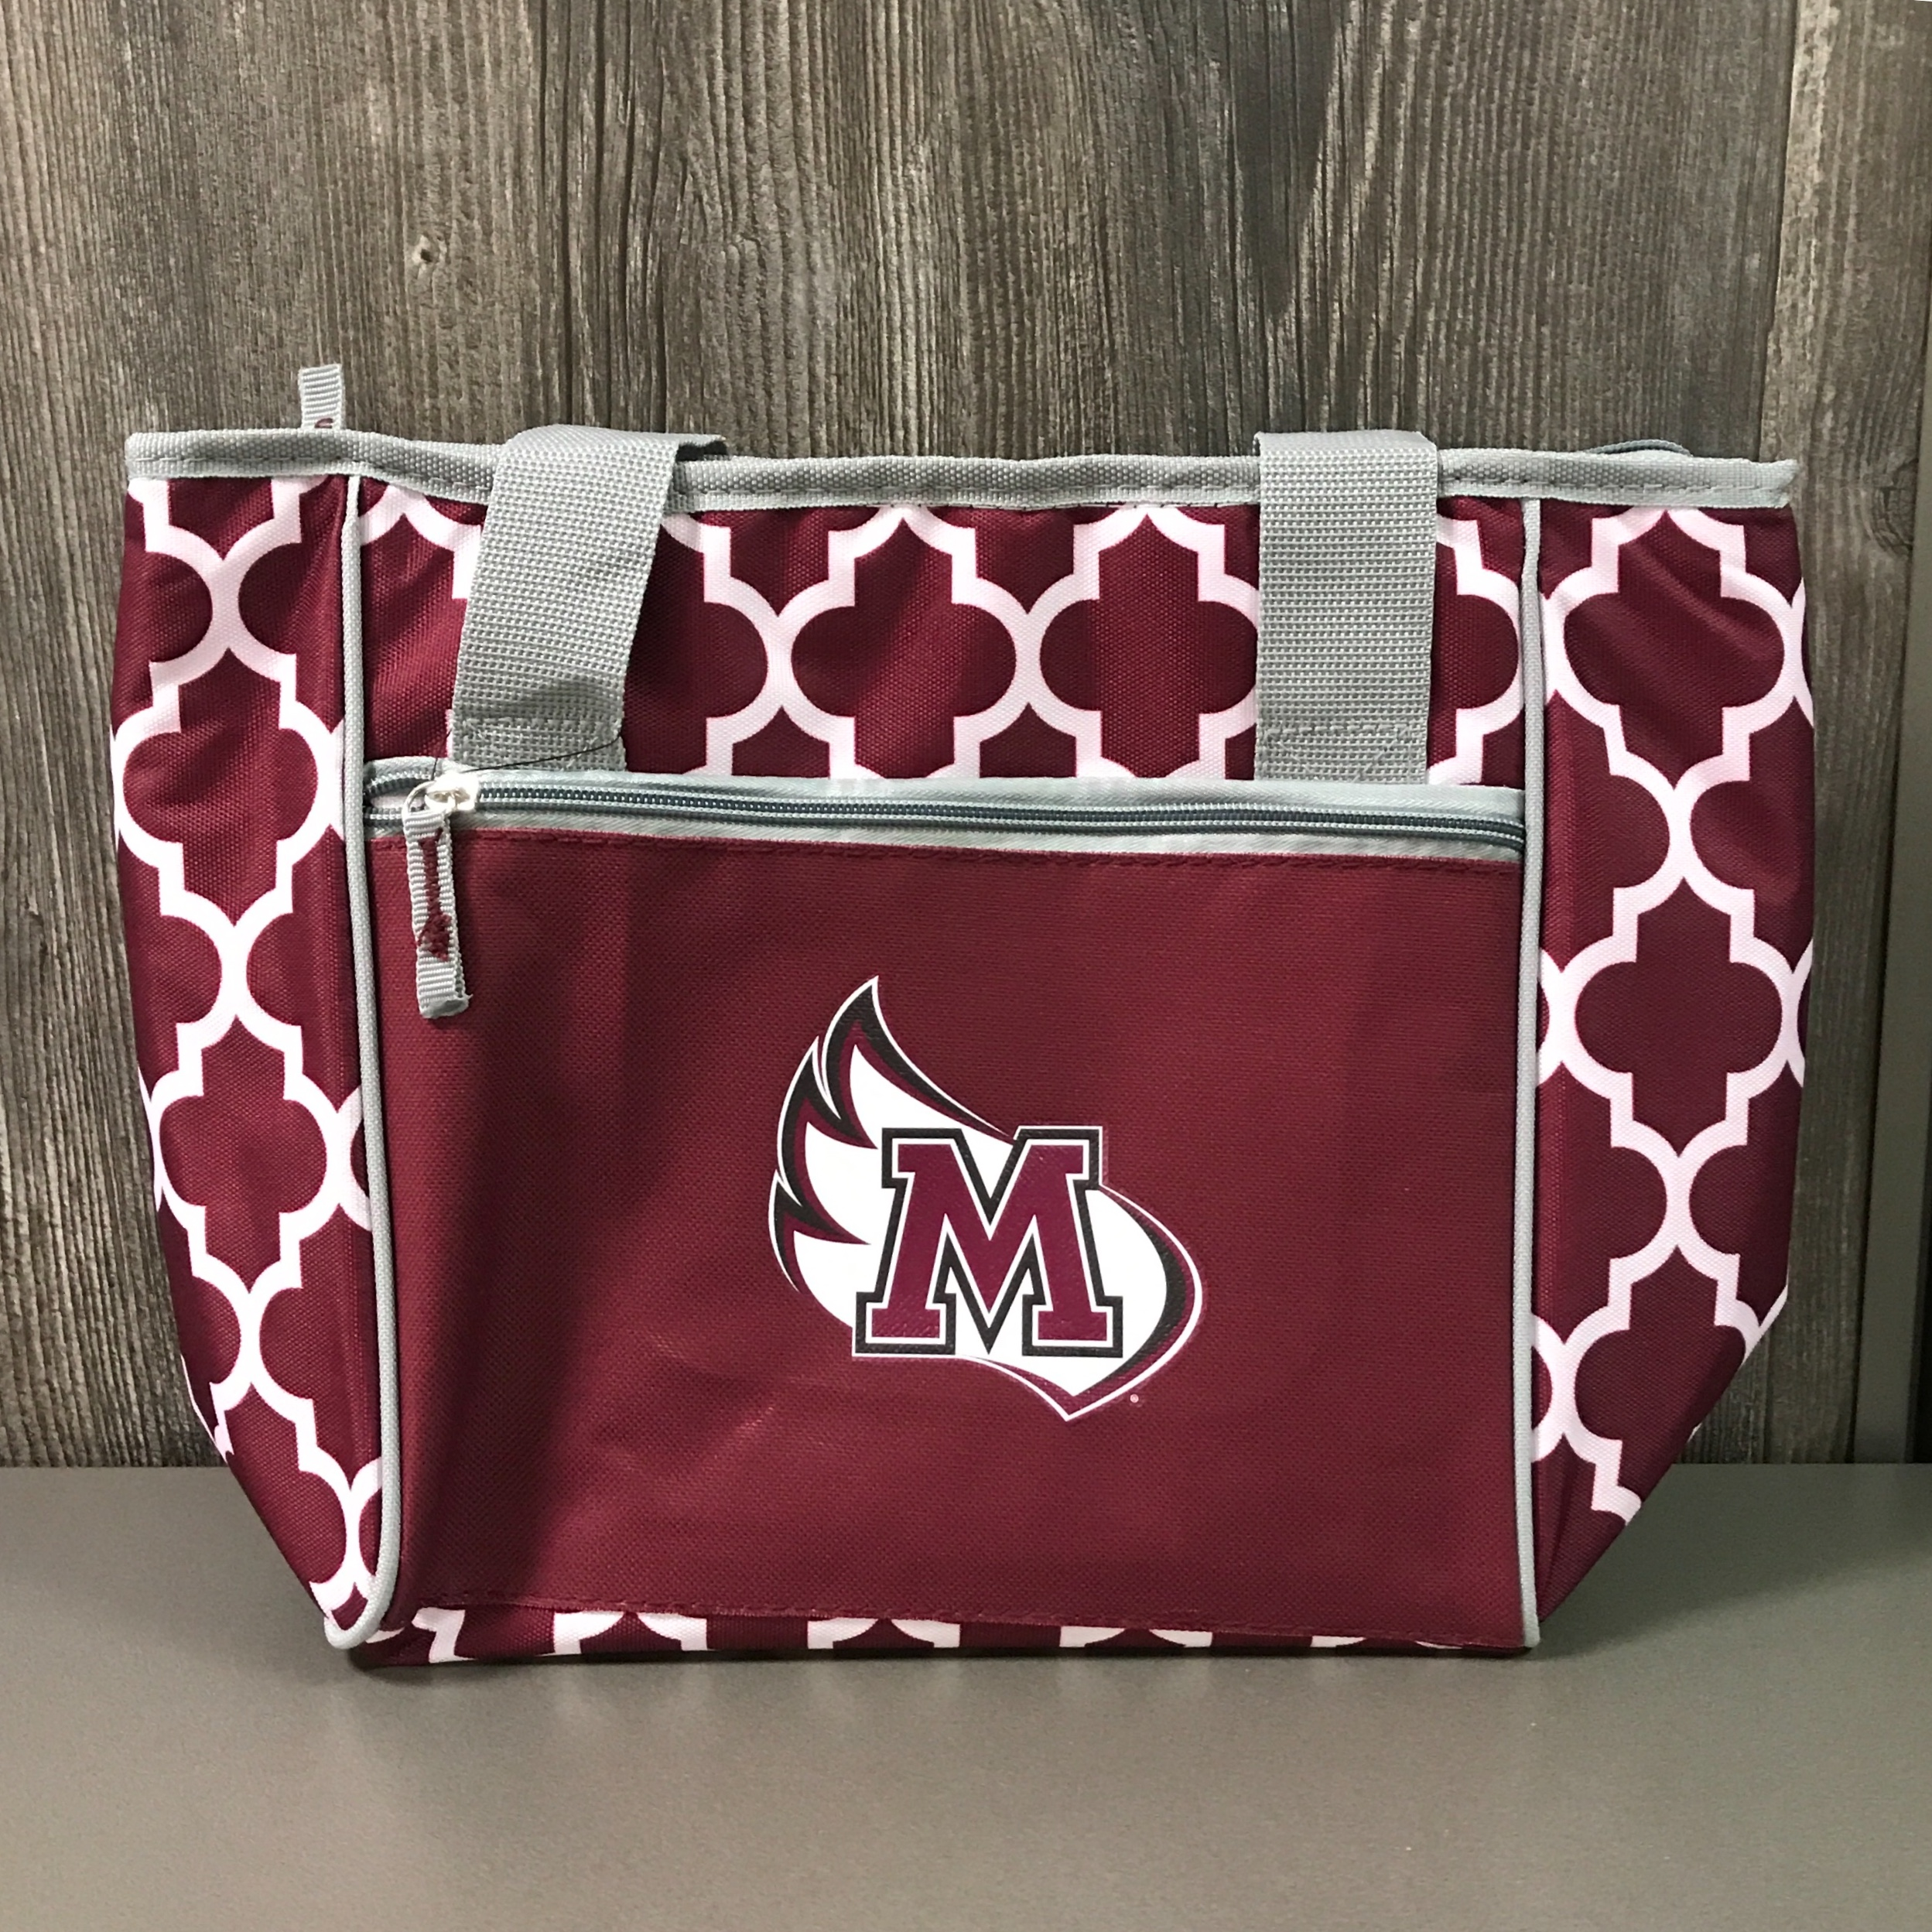 Image for the 16-Can Cooler Tote Maroon Logo Brands product